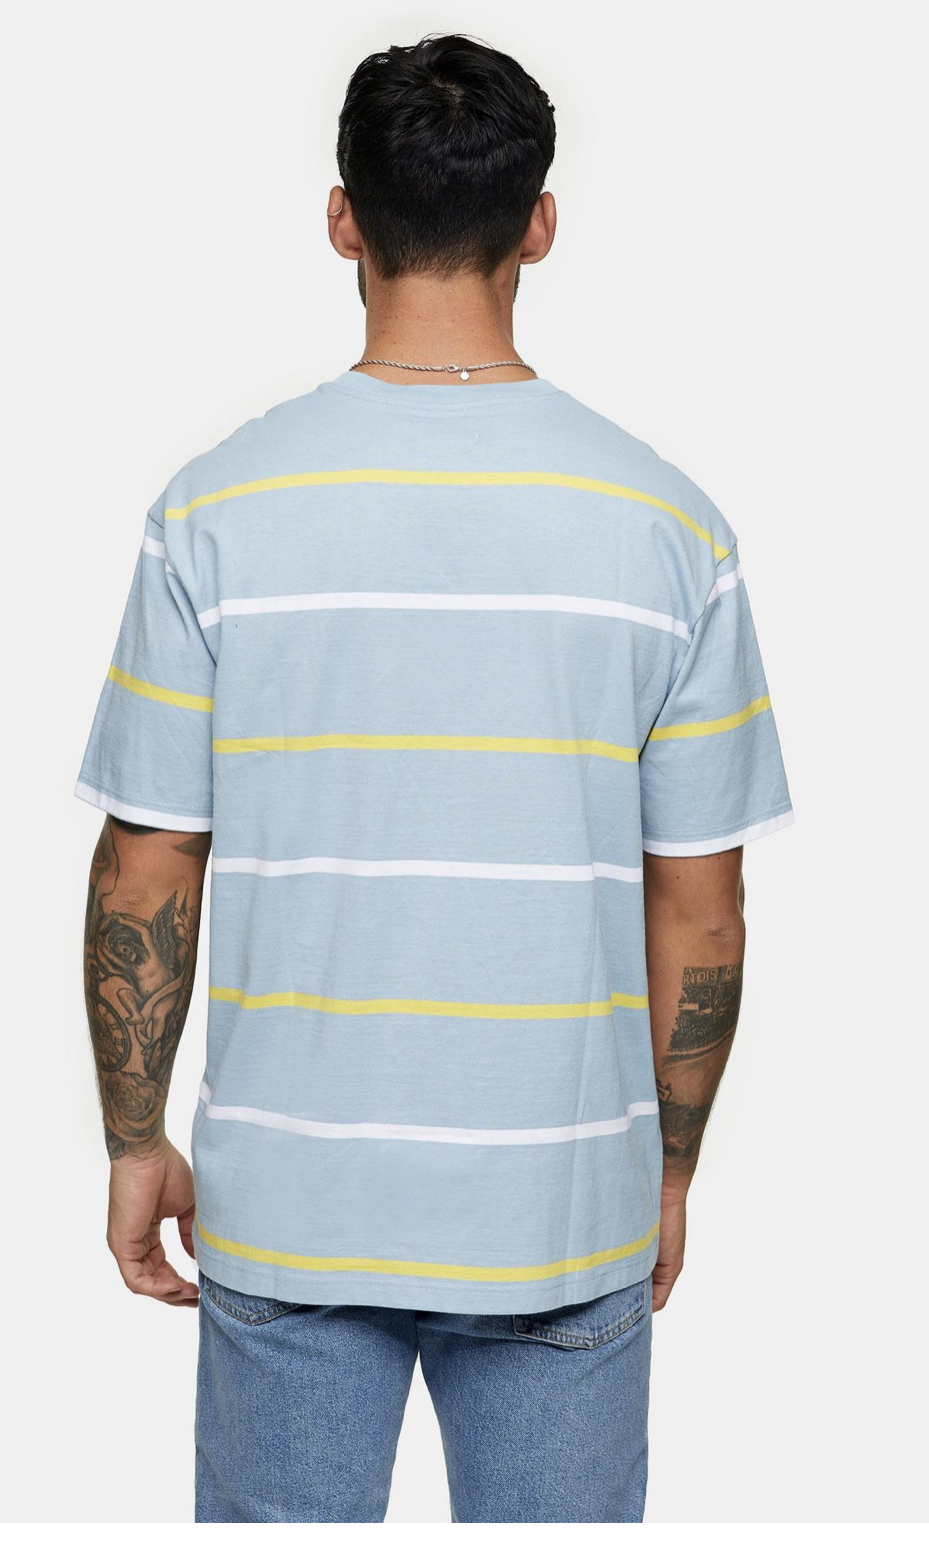 Blue, White And Yellow T-Shirt